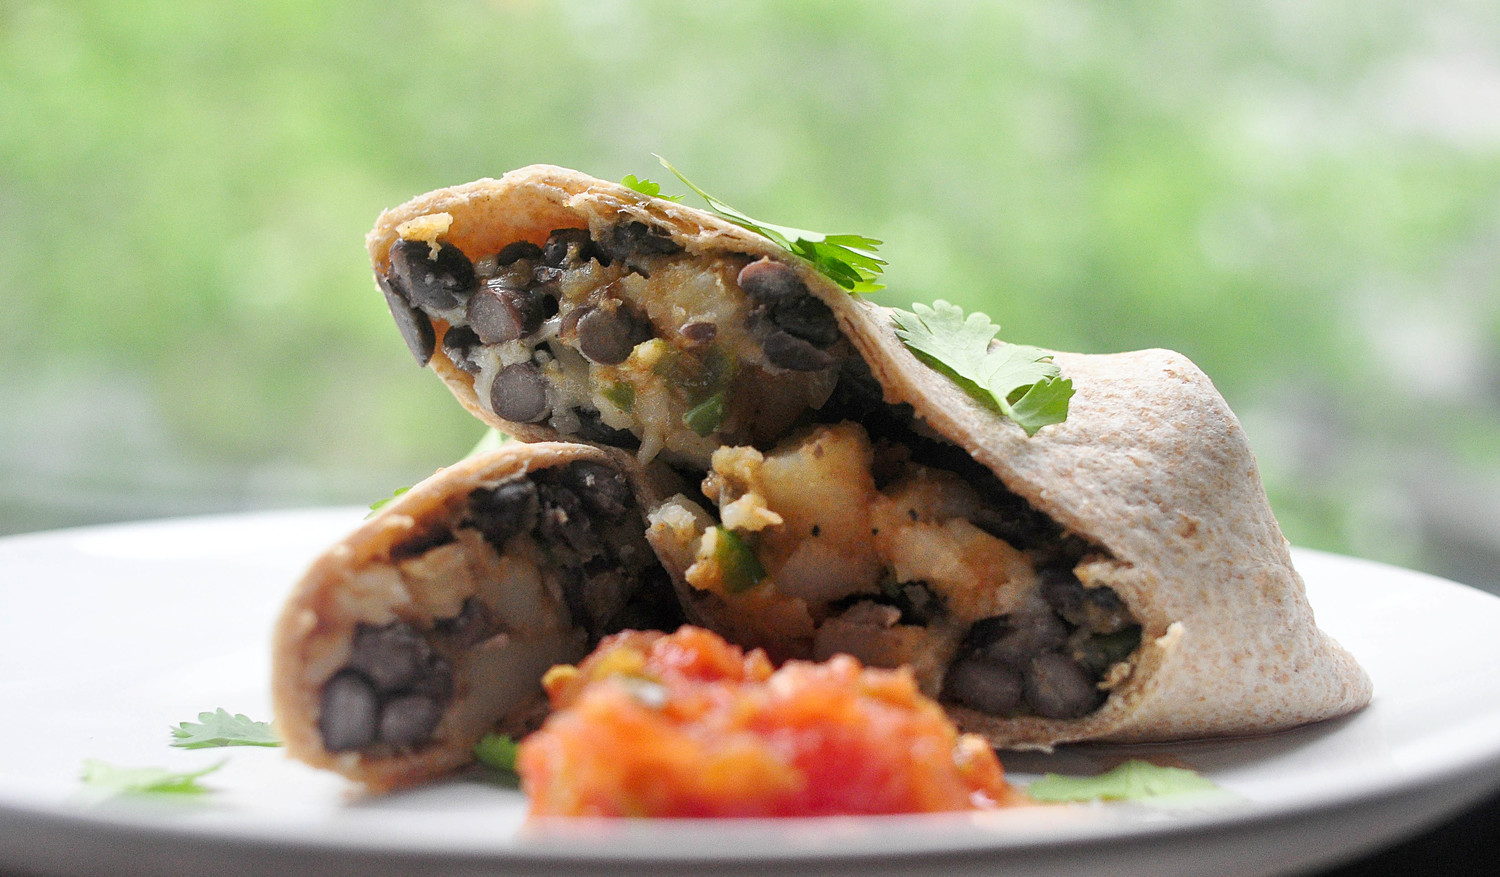 Potato, Jalapeño and Black Bean Burritos Recipe | Leanne Brown